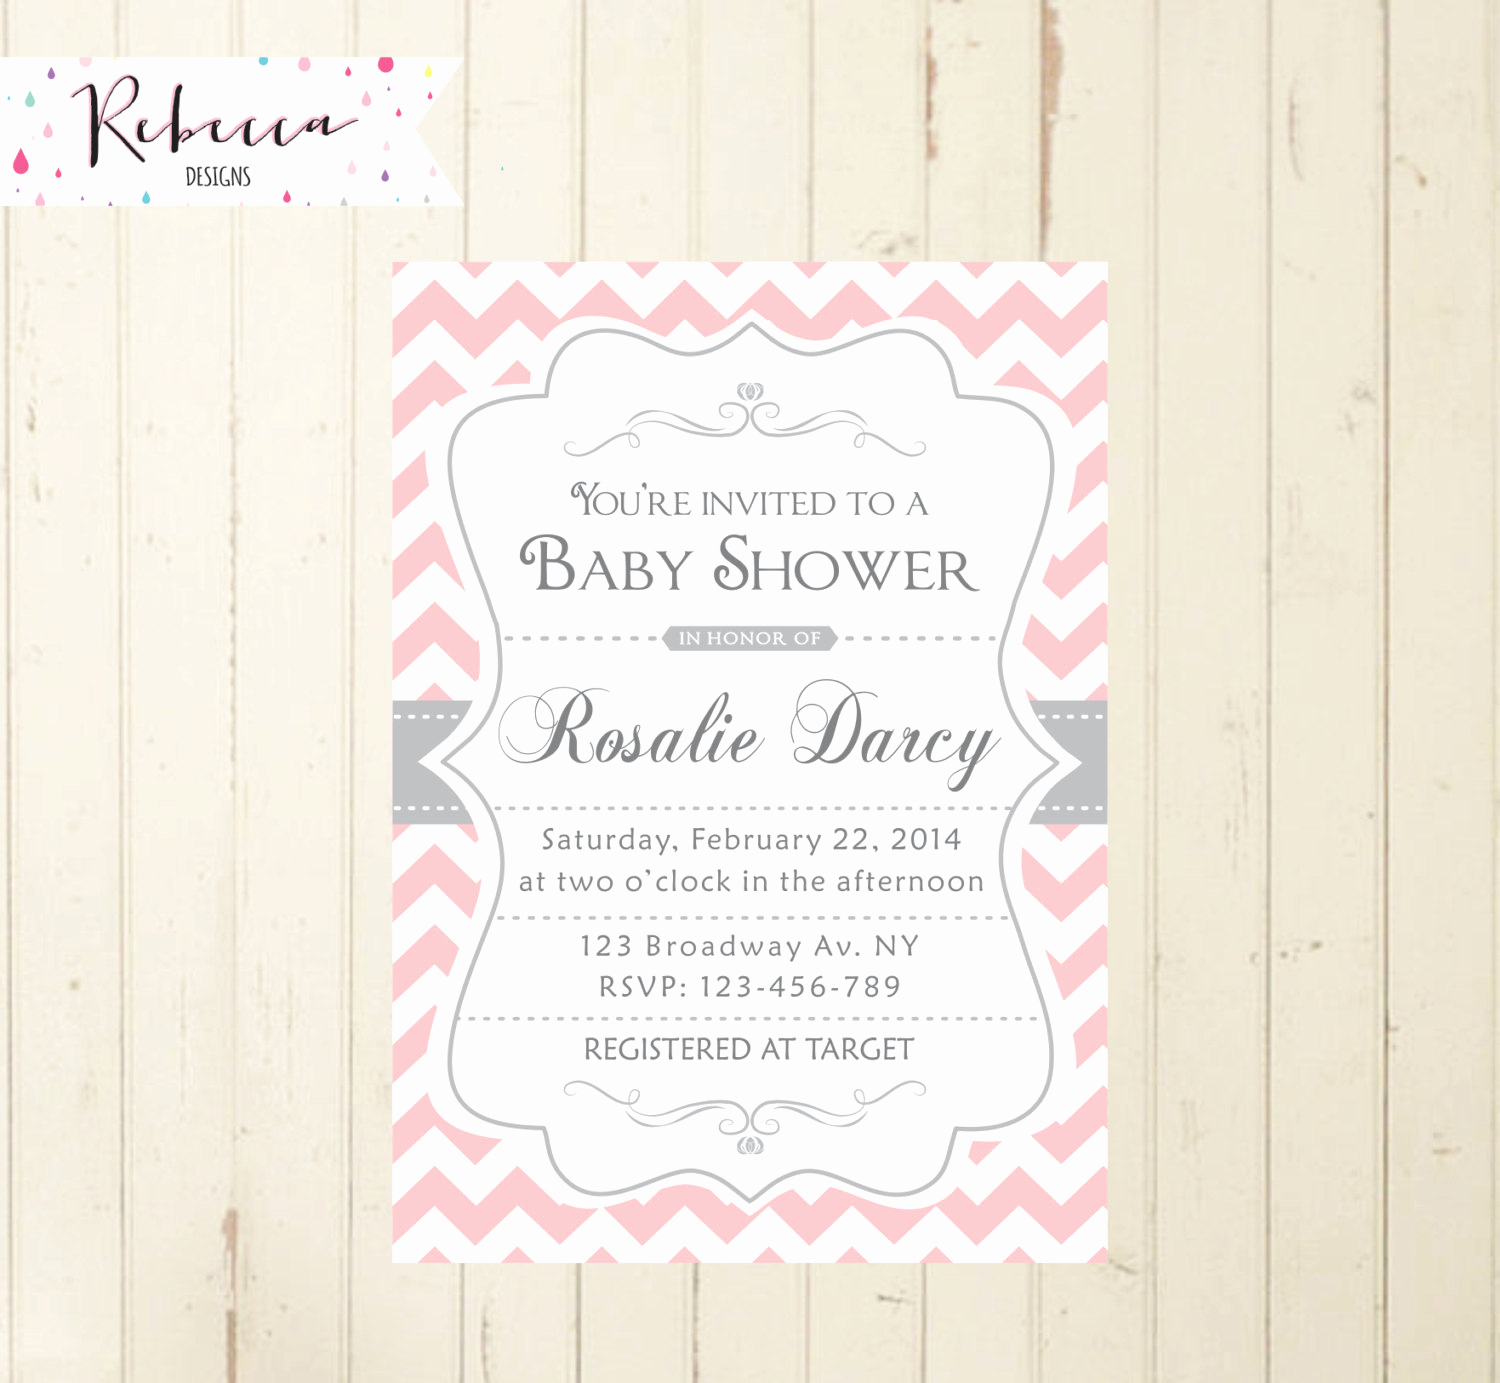 Baby Shower Brunch Invitation Beautiful Baby Shower Brunch Invitation Pink Baby Shower Invitation Pink